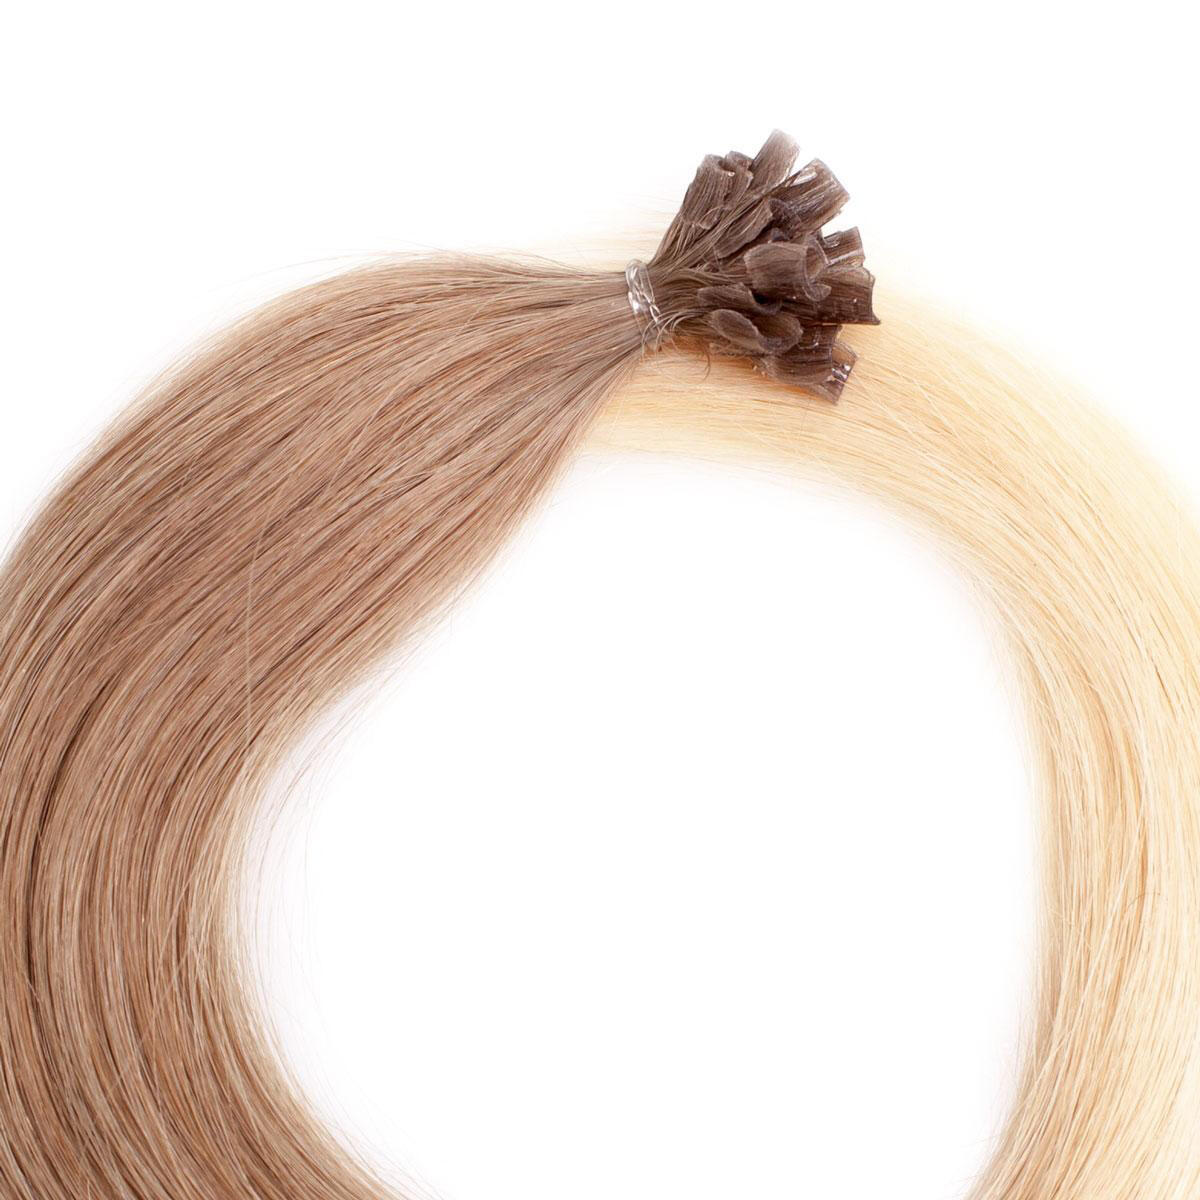 Nail Hair O7.3/10.8 Cendre Ash Blond Ombre 60 cm